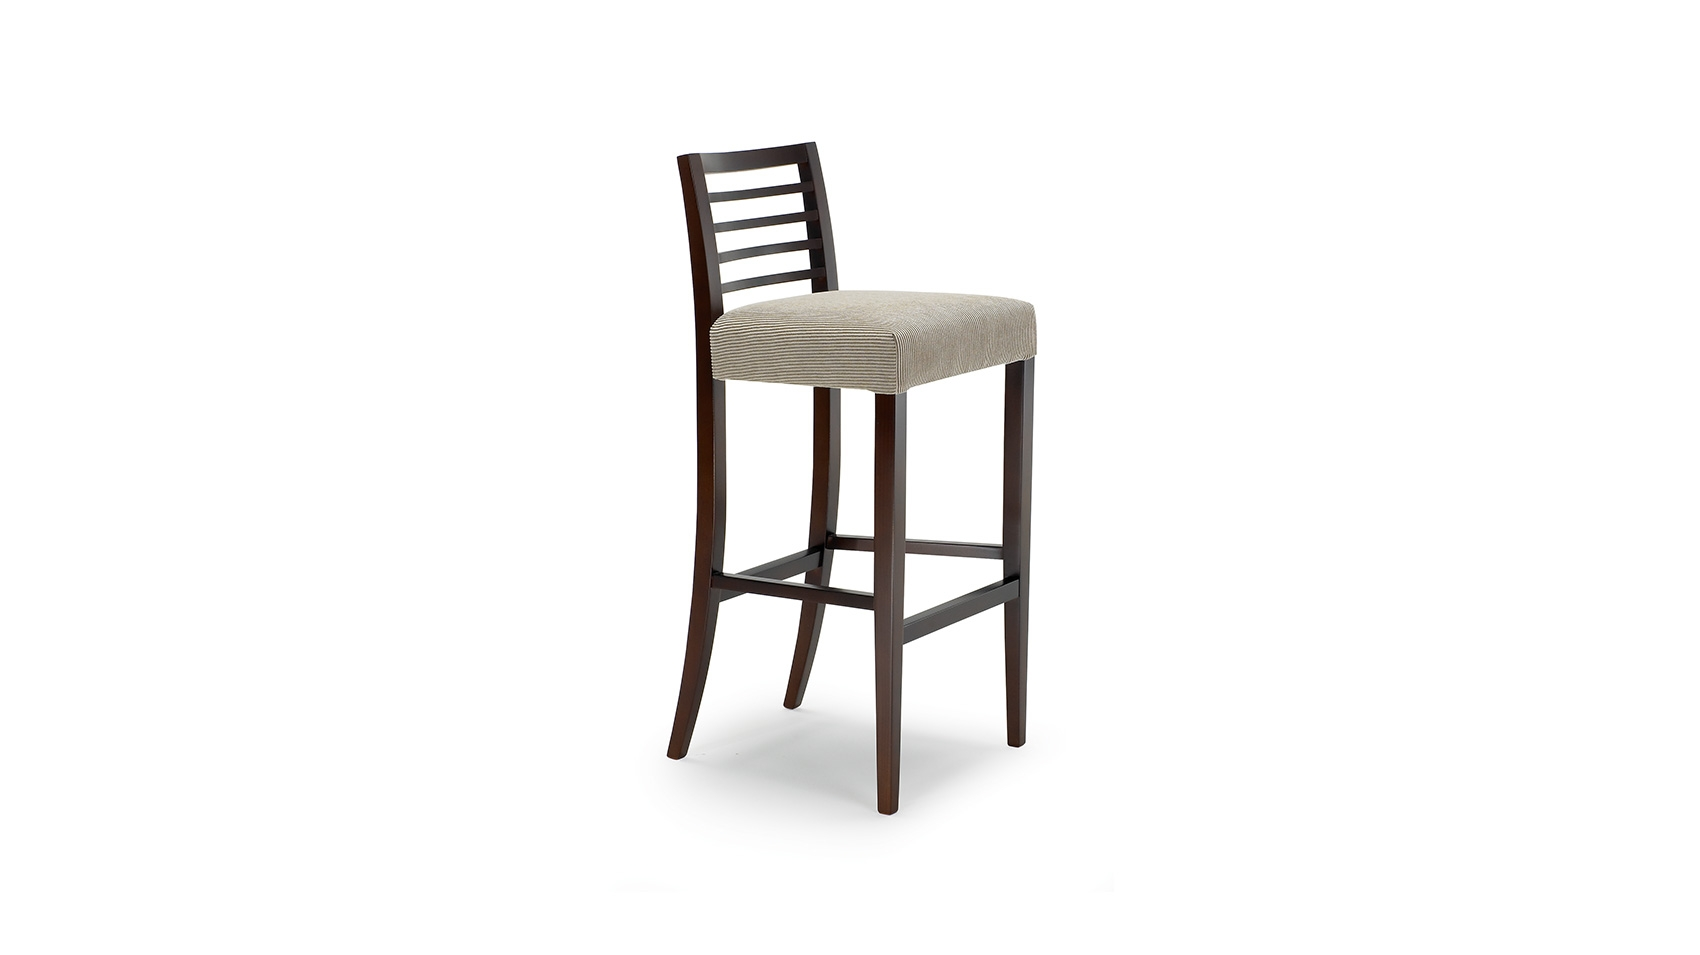 dining chair sb furniture. veneto is a classic design. well constructed with crisp and simple lines, never goes out of style. available as an armed or armless side/dining chair dining sb furniture